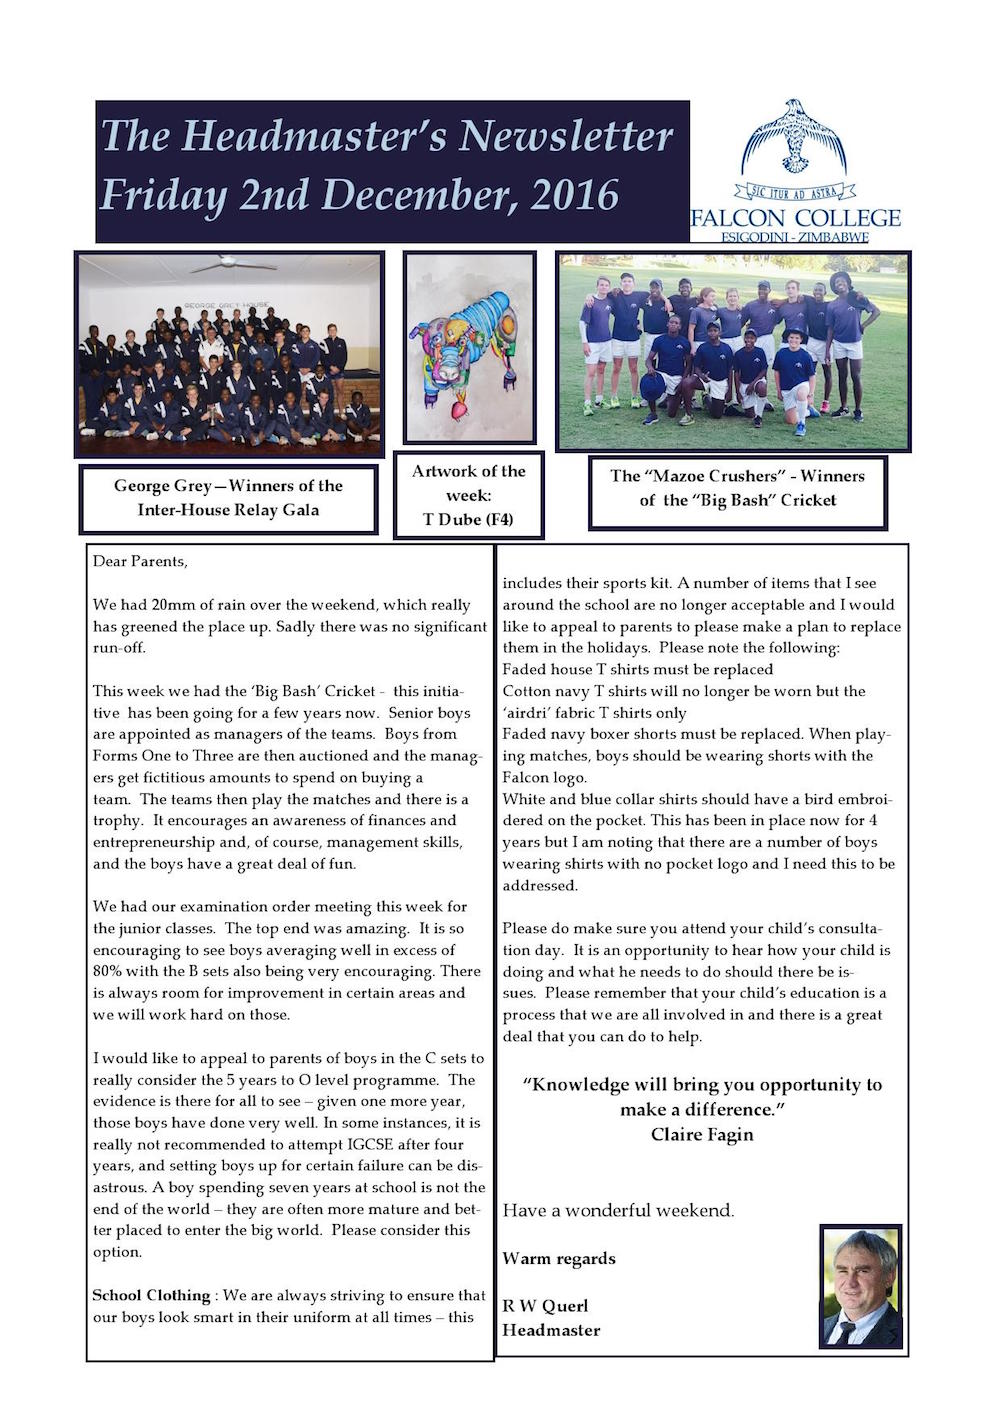 headmasters-newsletter-fri-2nd-december-2016-edited_000001